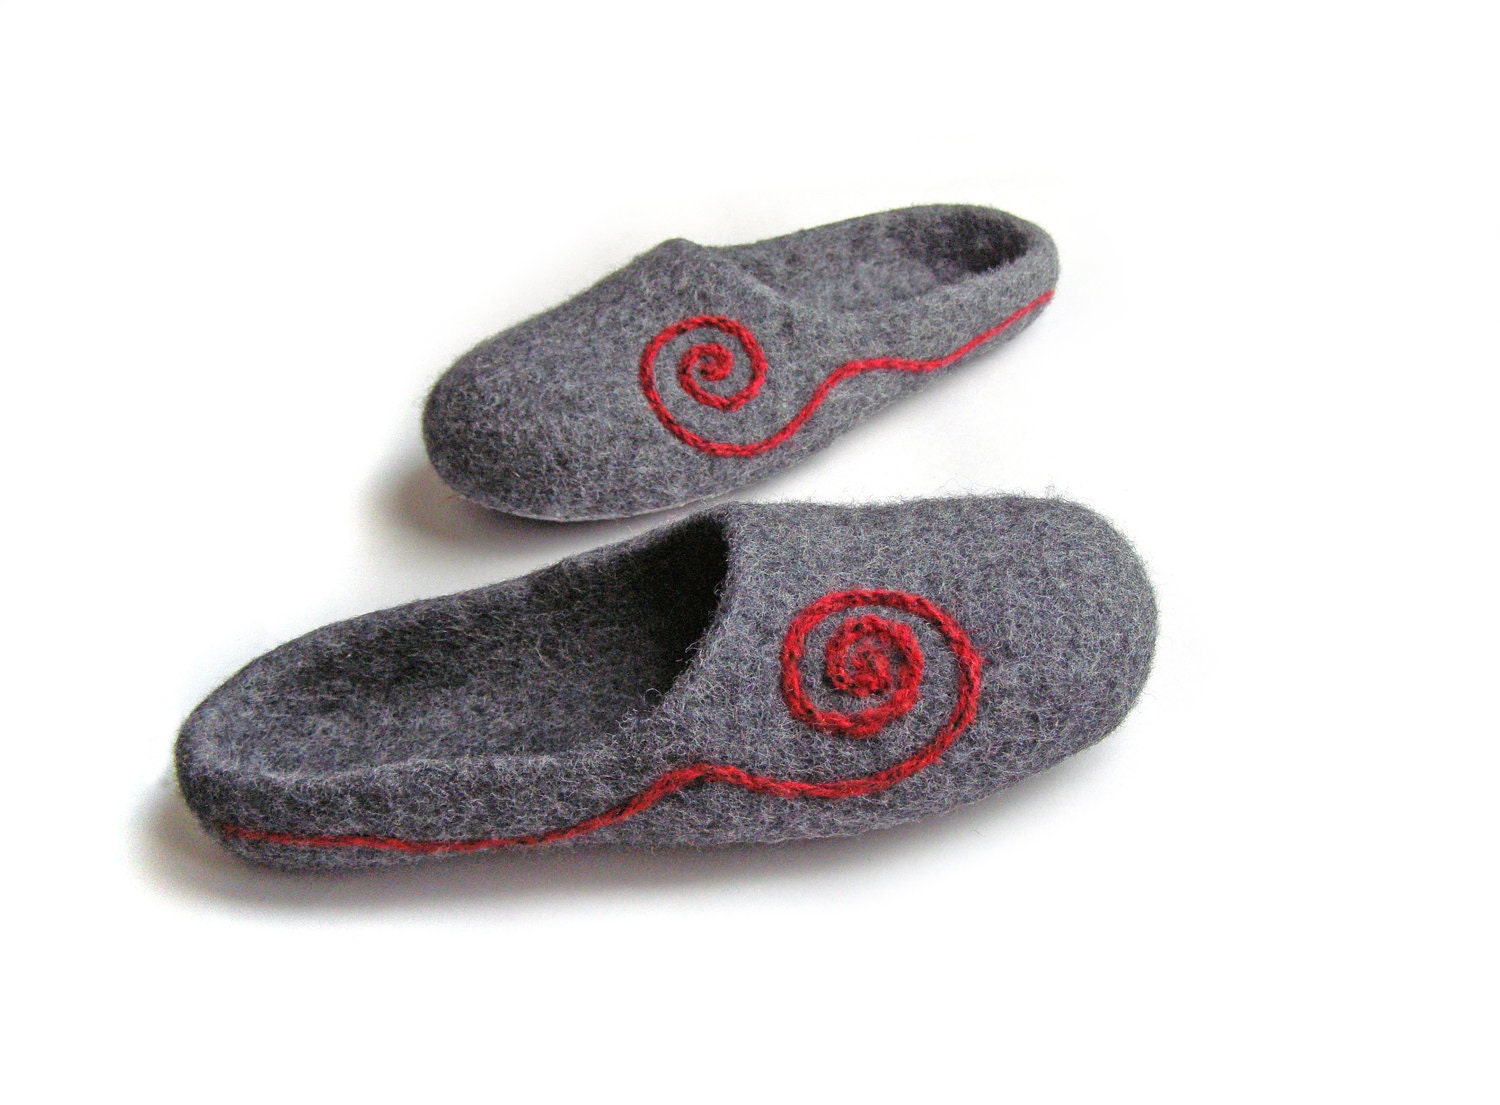 http://www.etsy.com/listing/109921786/women-house-slippers-felted-wool